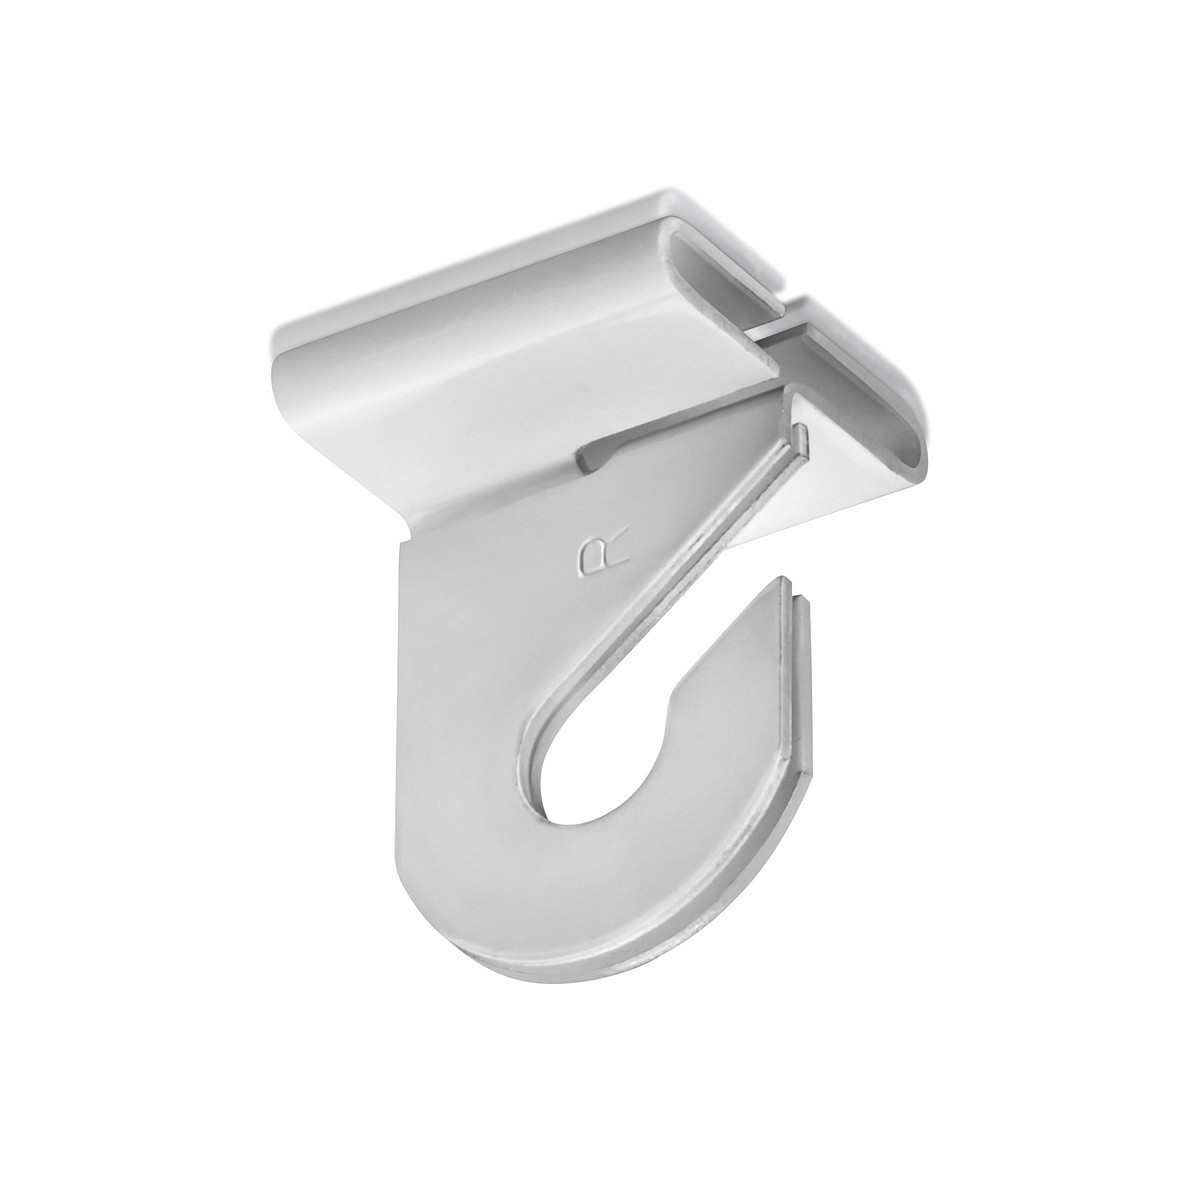 T Clamp for drop ceiling